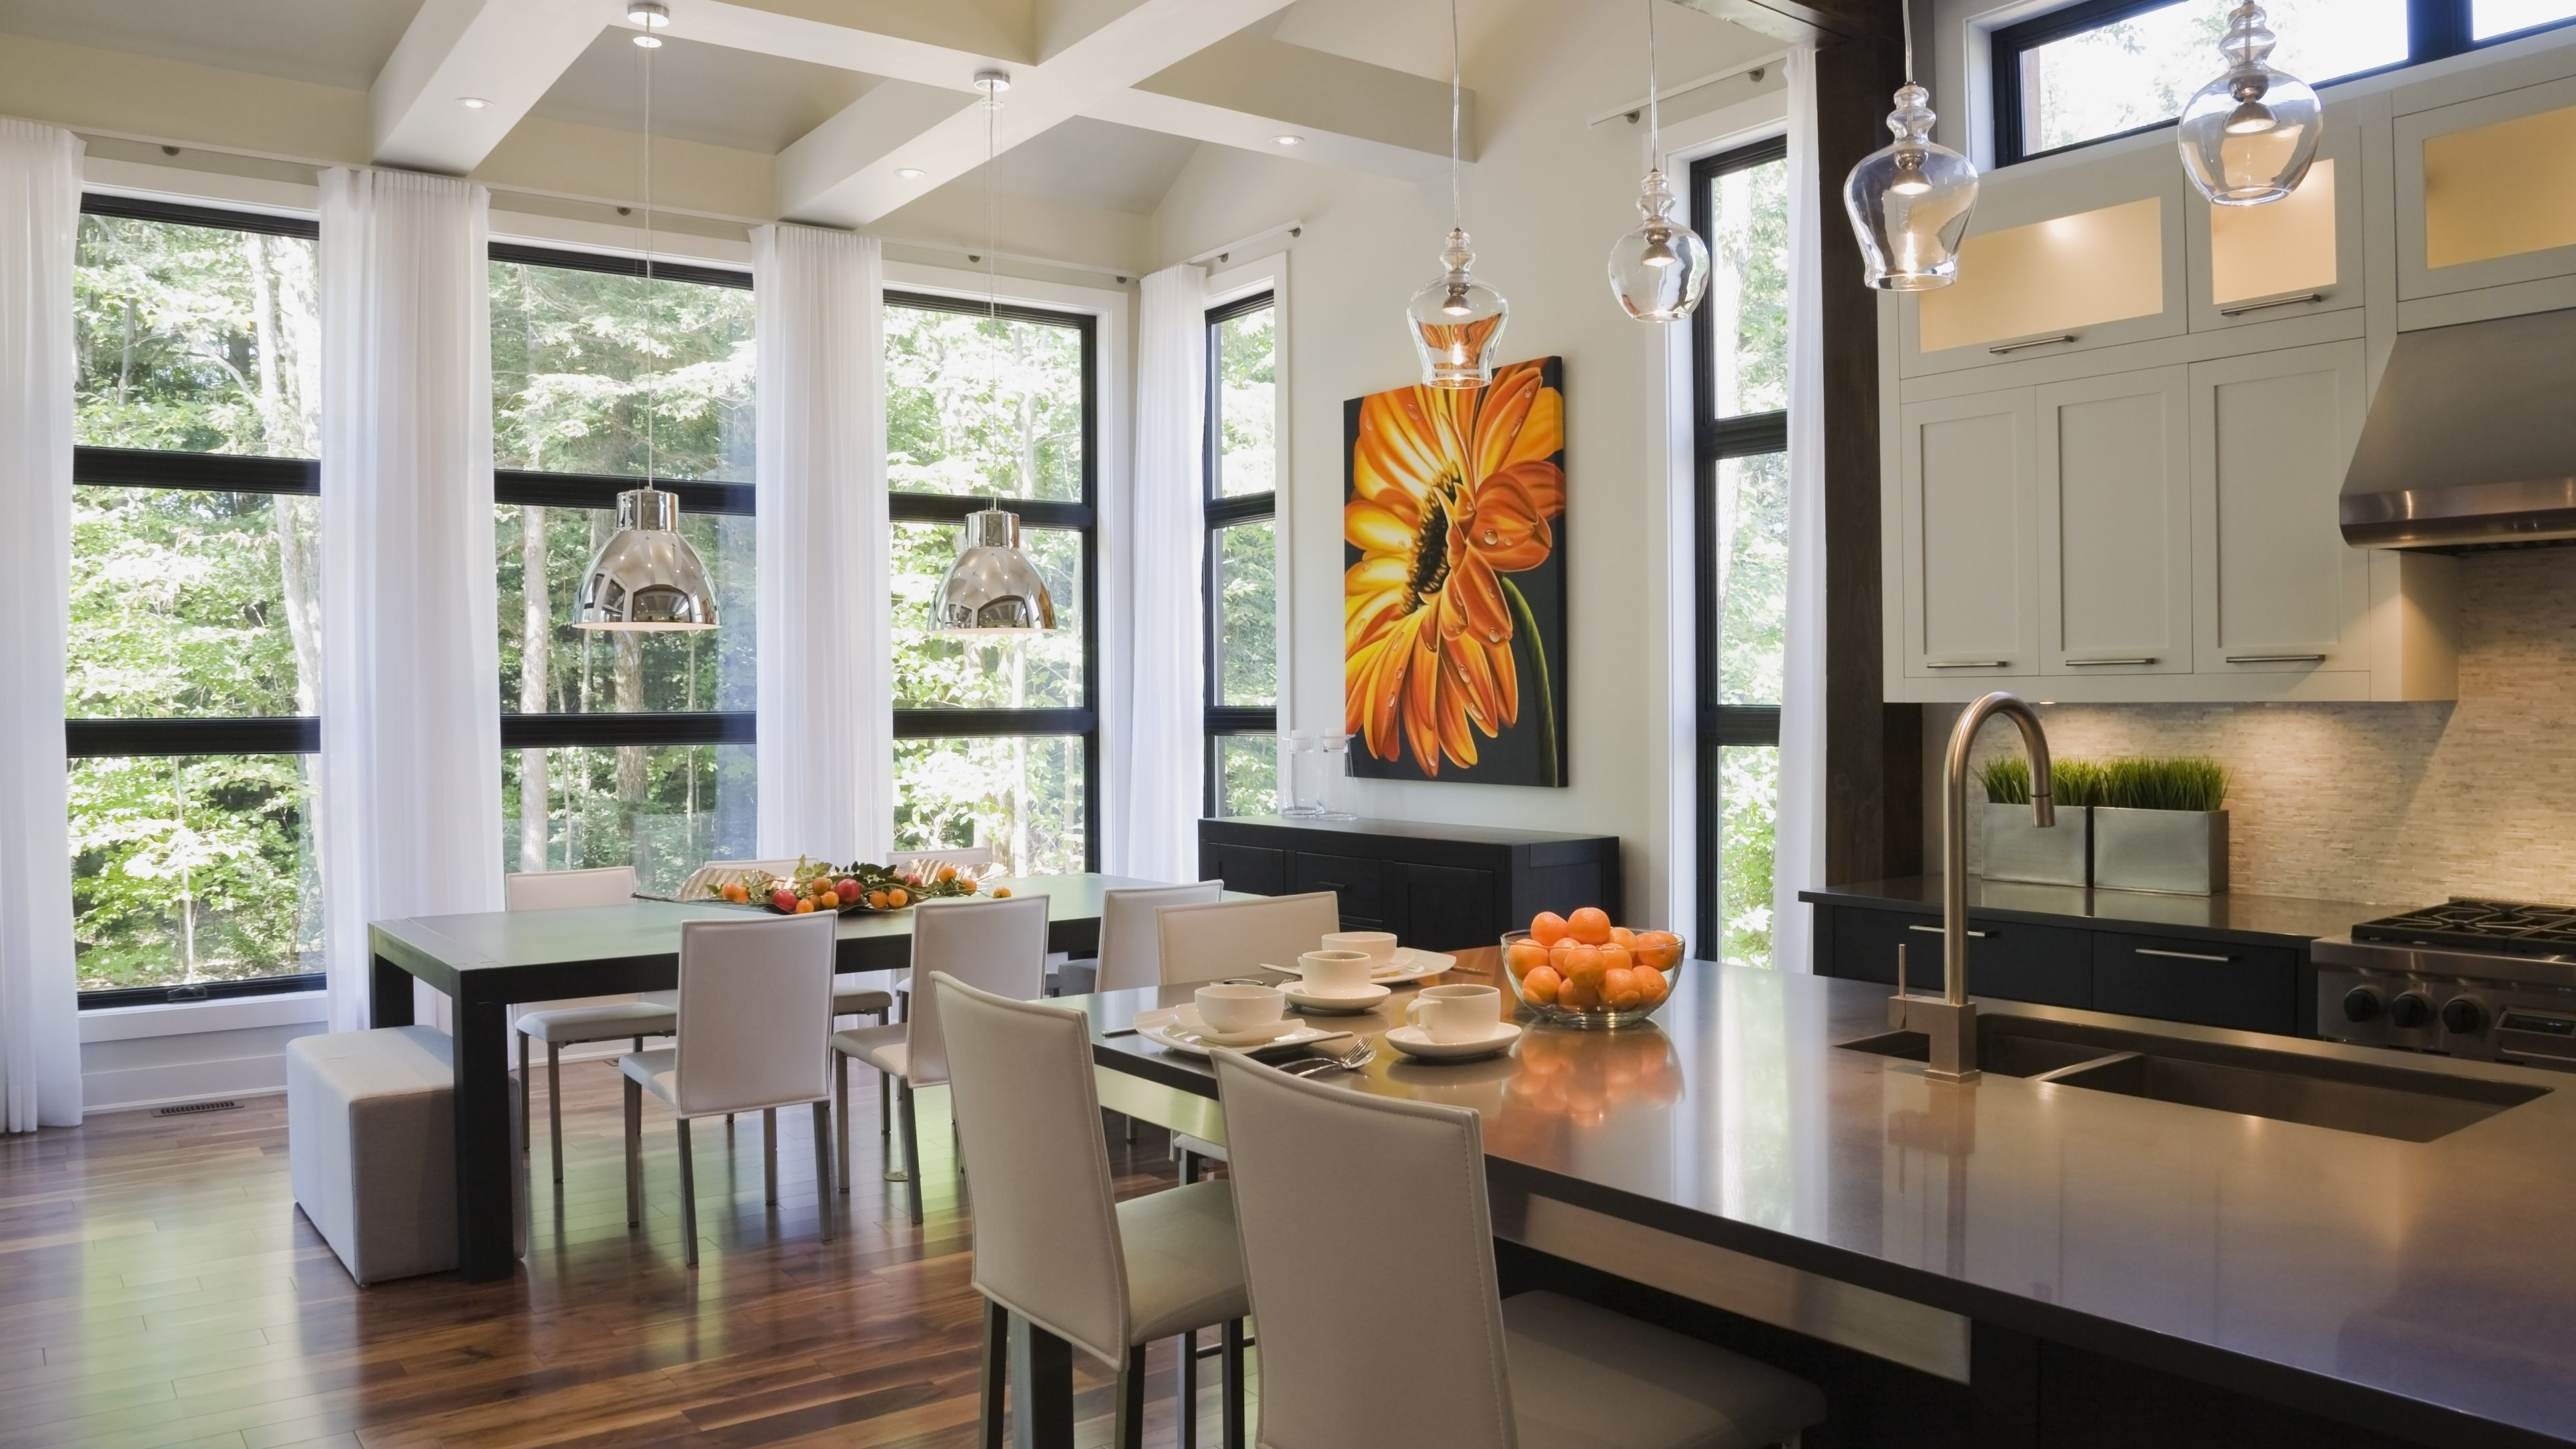 The Open Floor Plan History Pros And Cons   Open Concept With Basement Stairs In Middle Of House   Dining Room   Basement Steps   Basement Remodeling   Stair Case   Kitchen